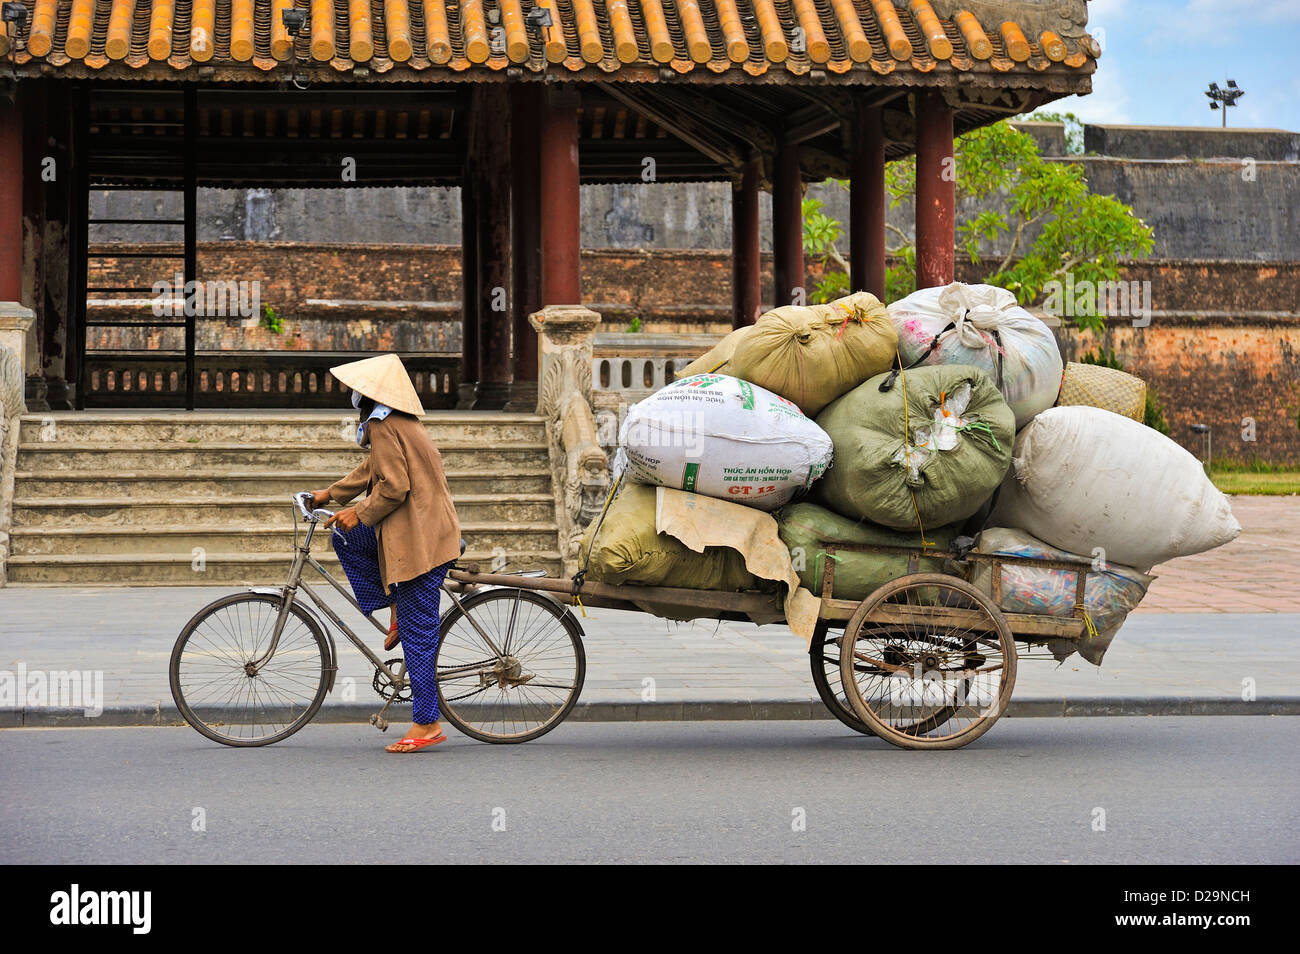 Vietnam, Hue - Woman pulling a very large load on a bicycle - people street scene - Stock Image